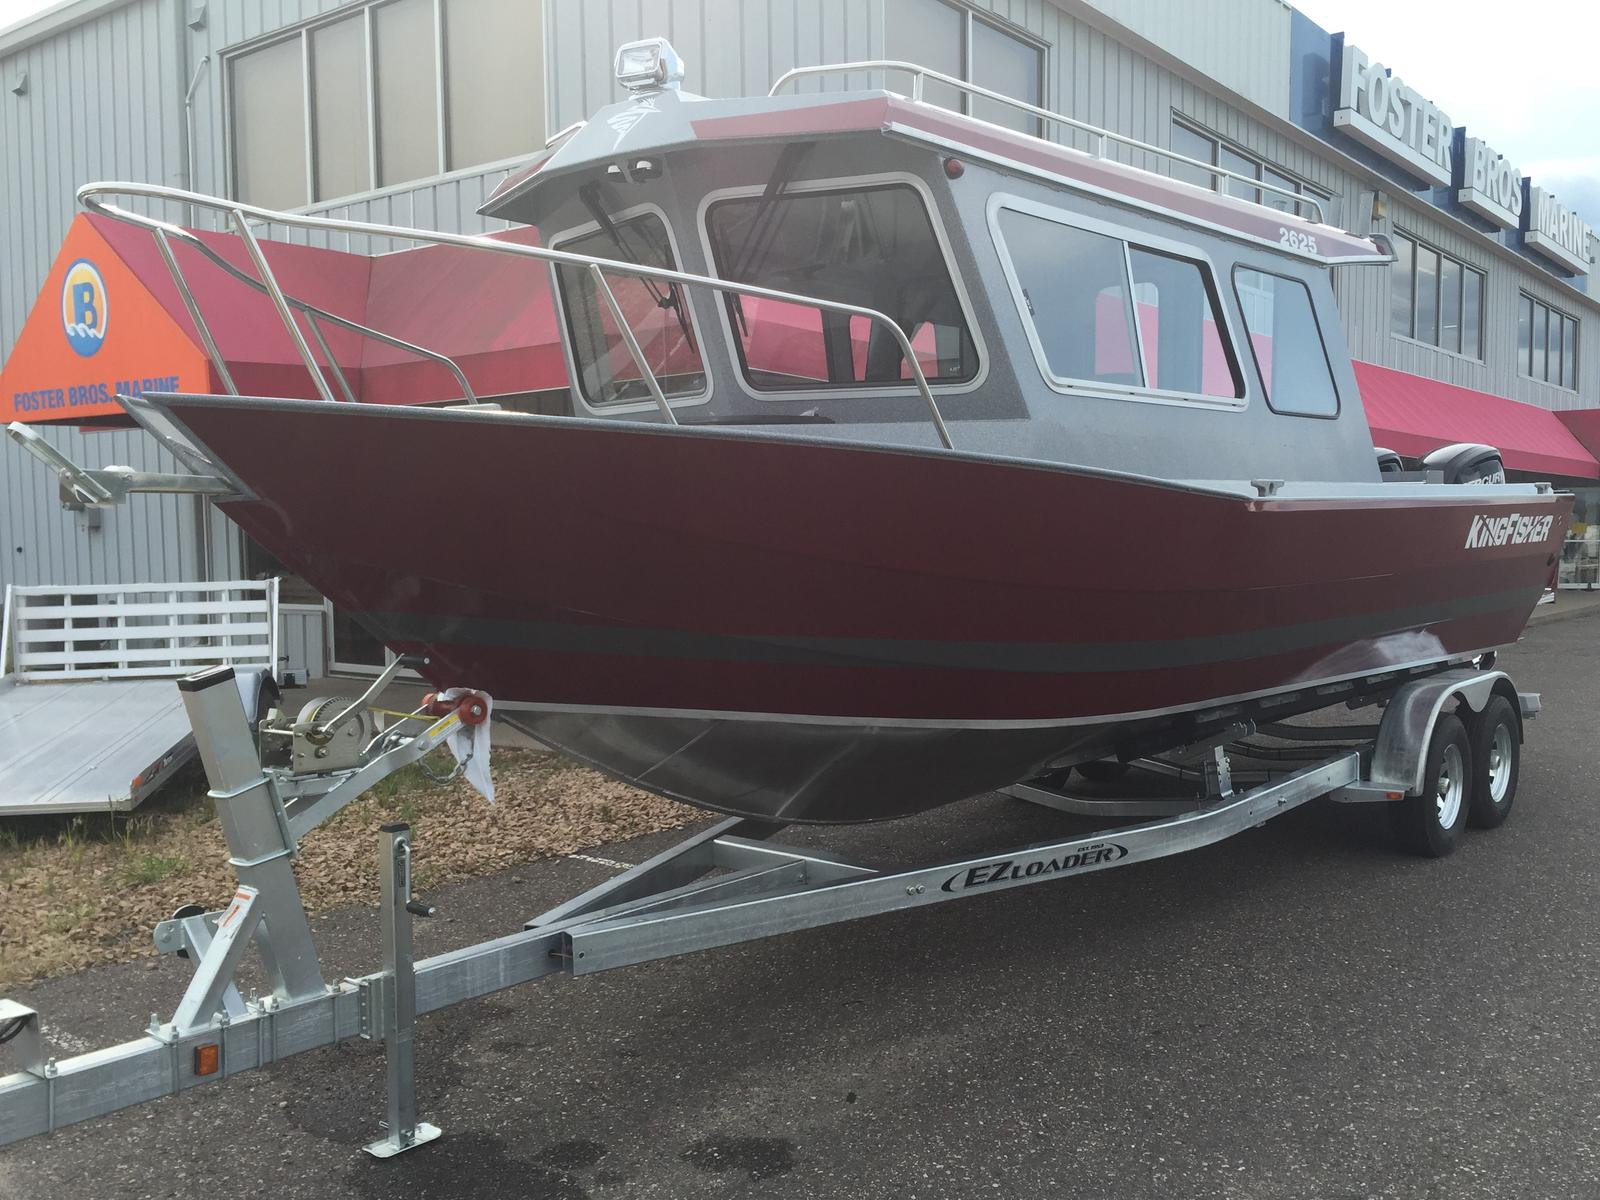 2018 Kingfisher Boats 2625 Coastal Express For Sale In Delano Mn 6 5 Hp Mercury Outboard Motor Wiring Harness Img 0936